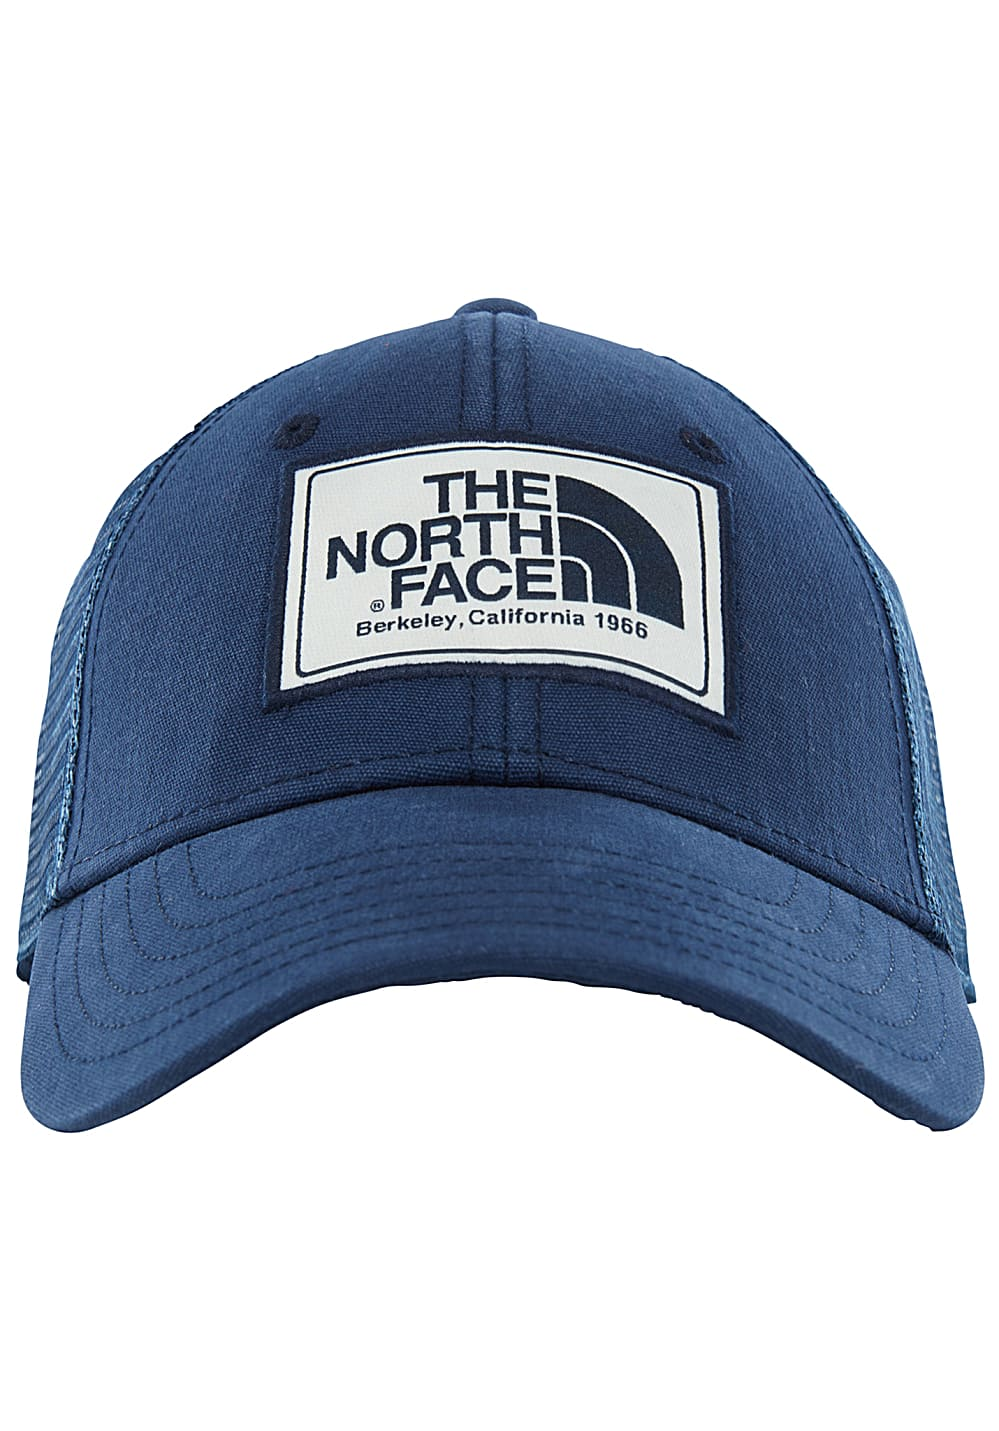 27a8a817c51 THE NORTH FACE Mudder - Trucker Cap - Blue - Planet Sports